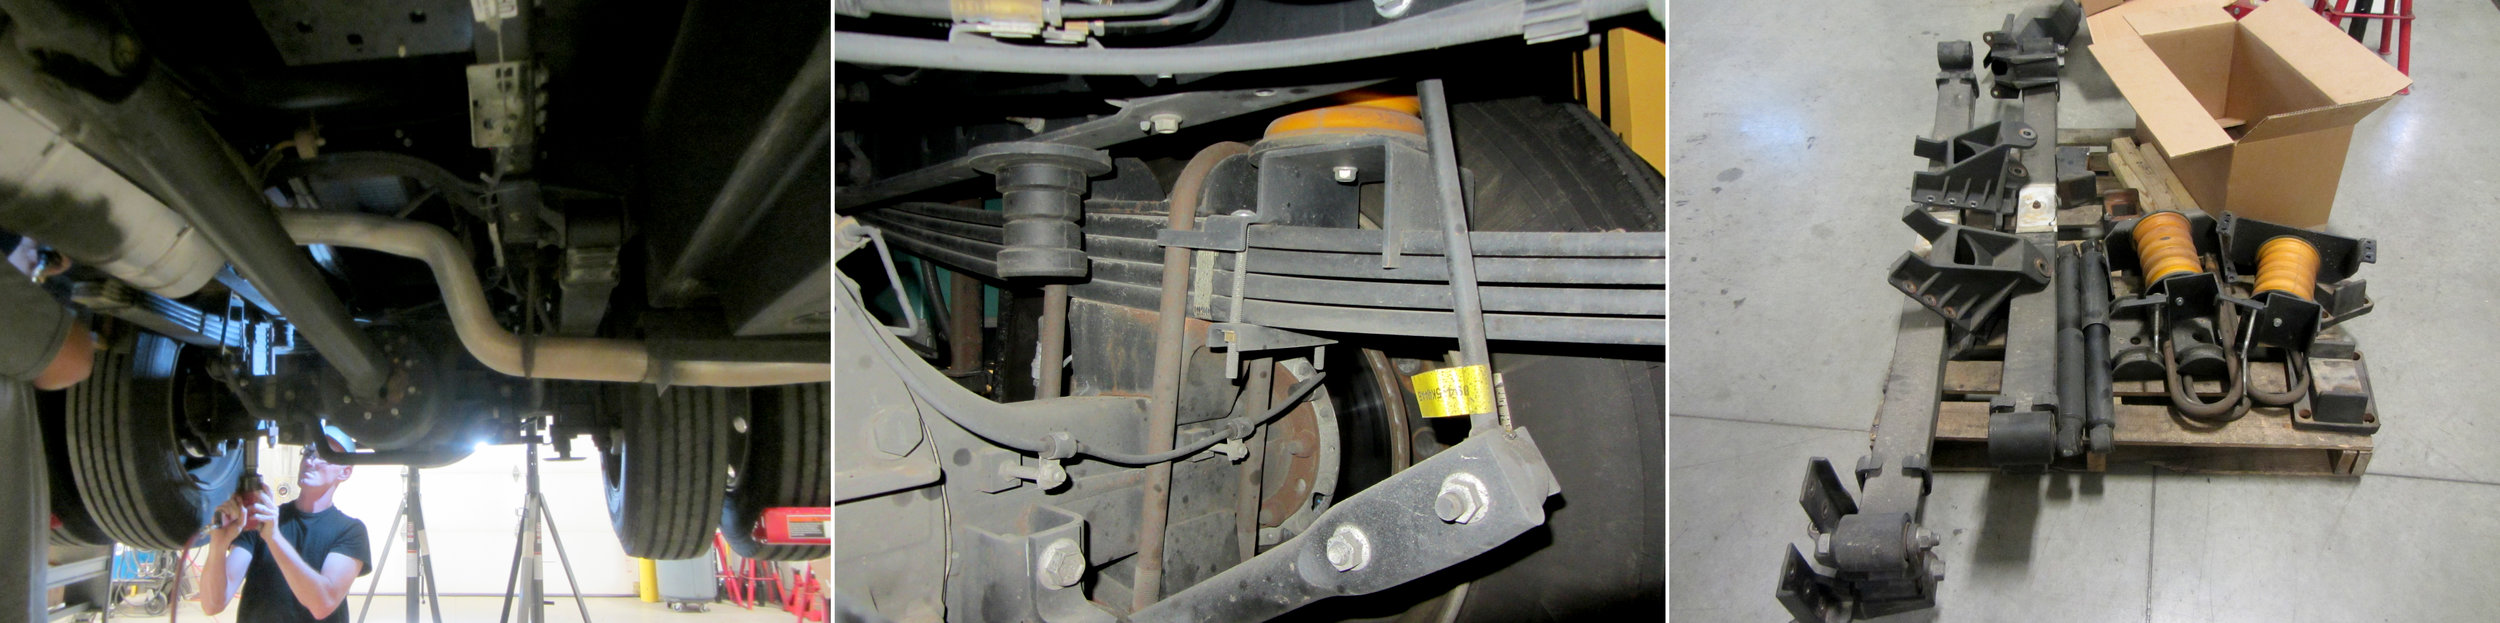 Disassembly begins, including removal of leaf springs, shock absorbers, and Sumo Springs (yellow)